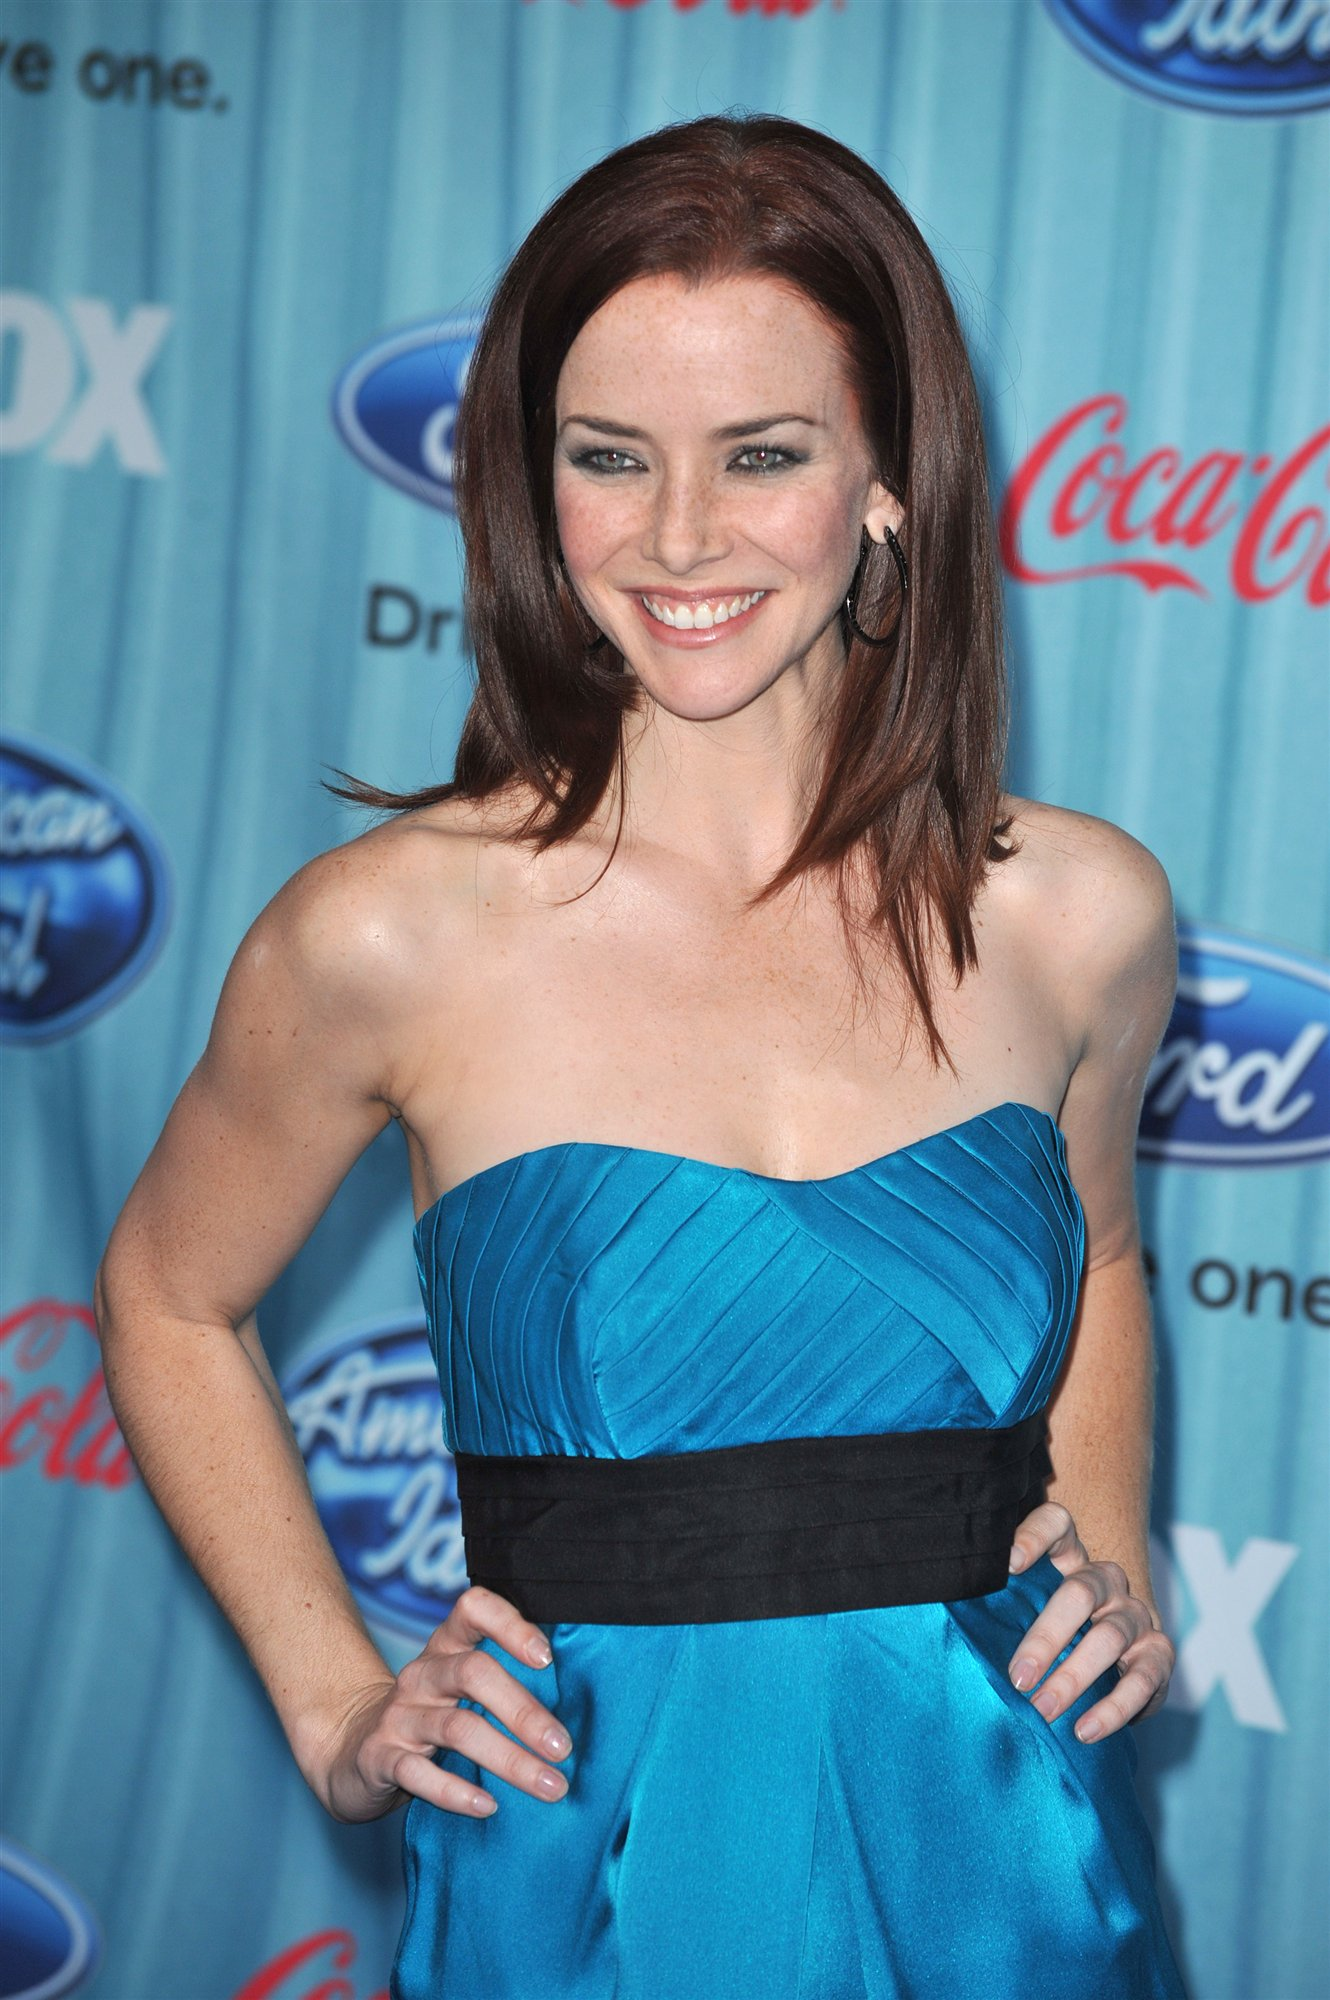 annie wersching - photo #31